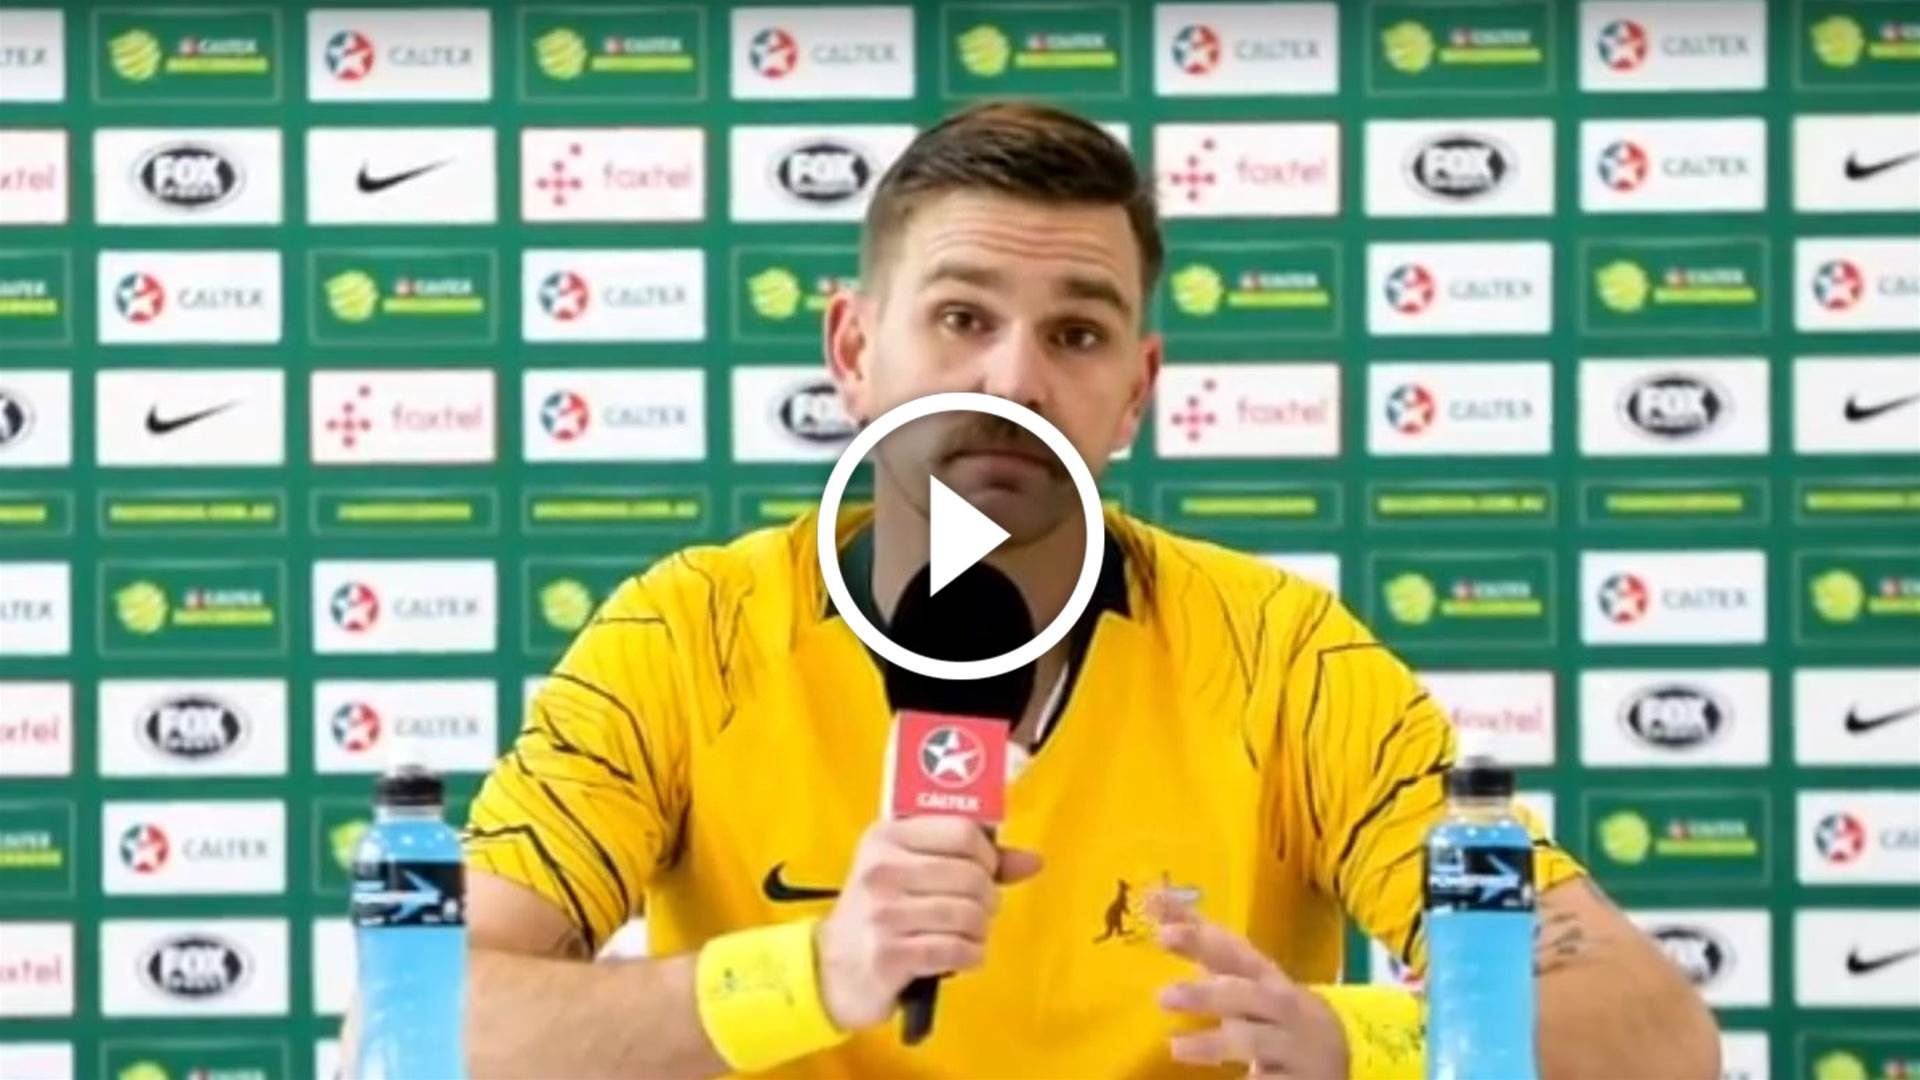 What inspiration can the Caltex Socceroos draw from Harley Breen?